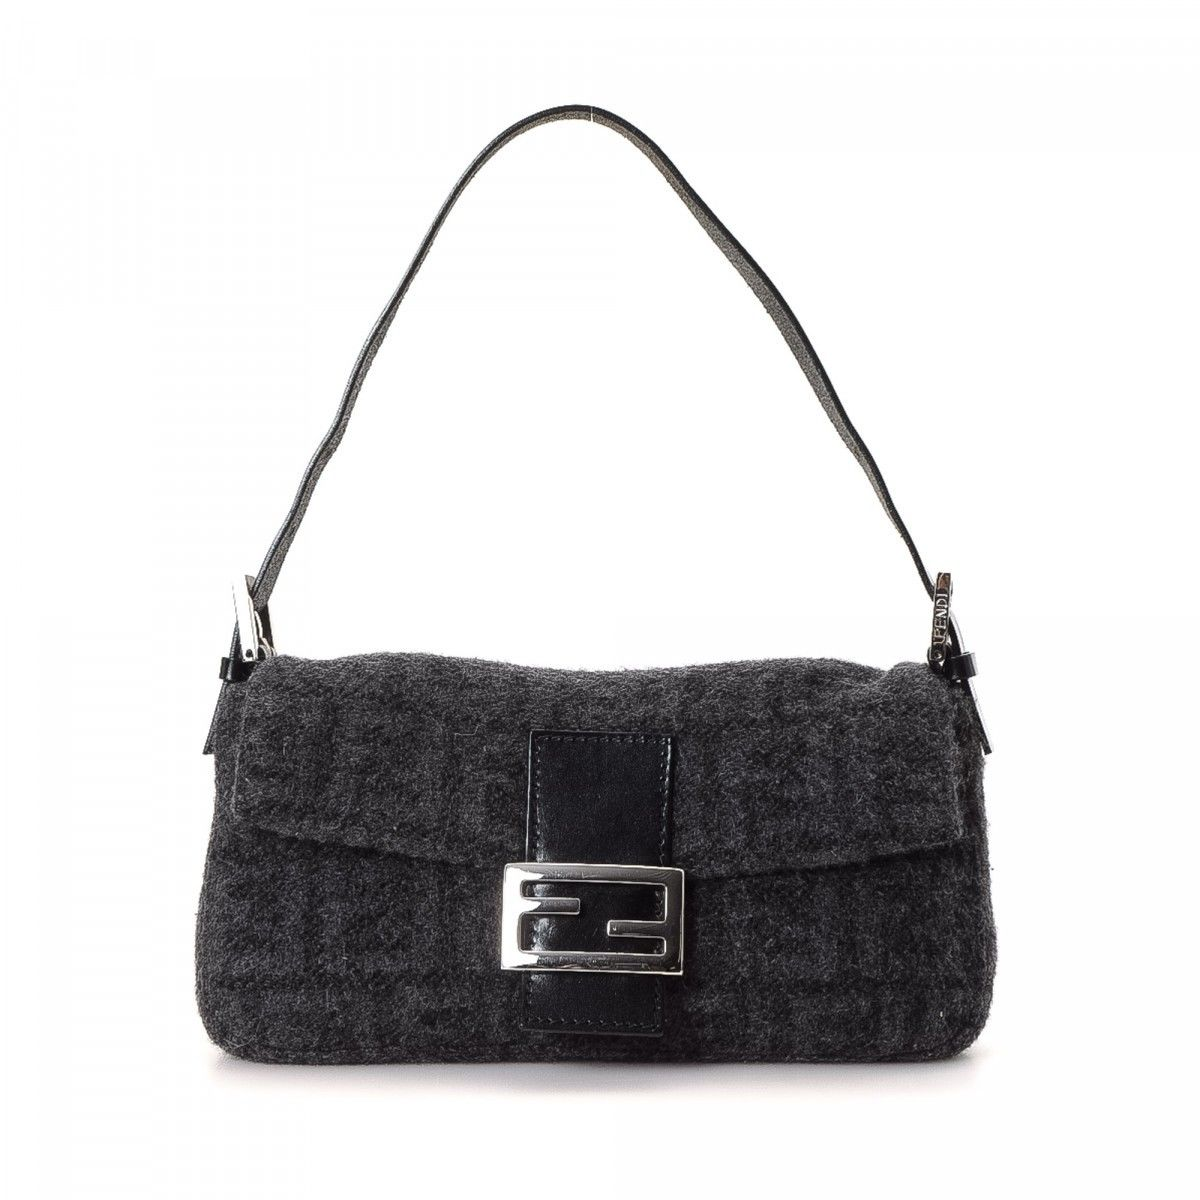 Fendi Pre-owned - Wool mini bag MtU2a